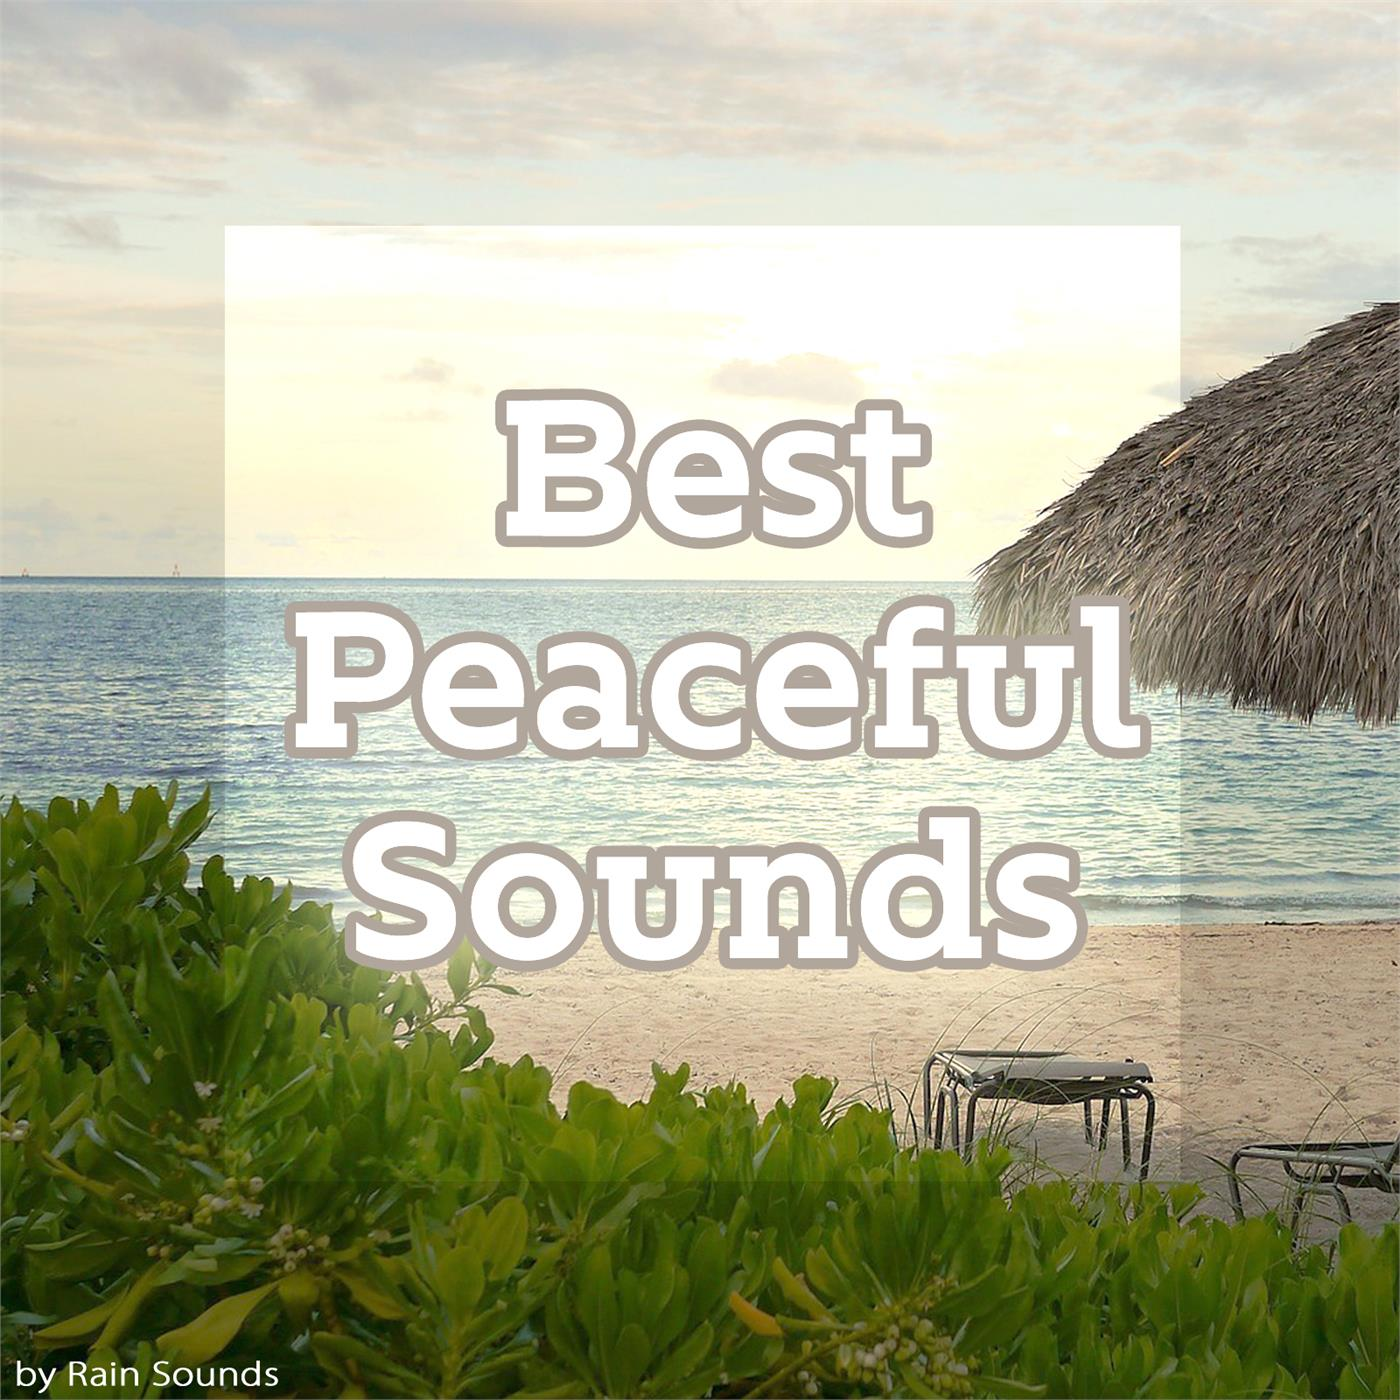 Best Peaceful Sounds | Record Union